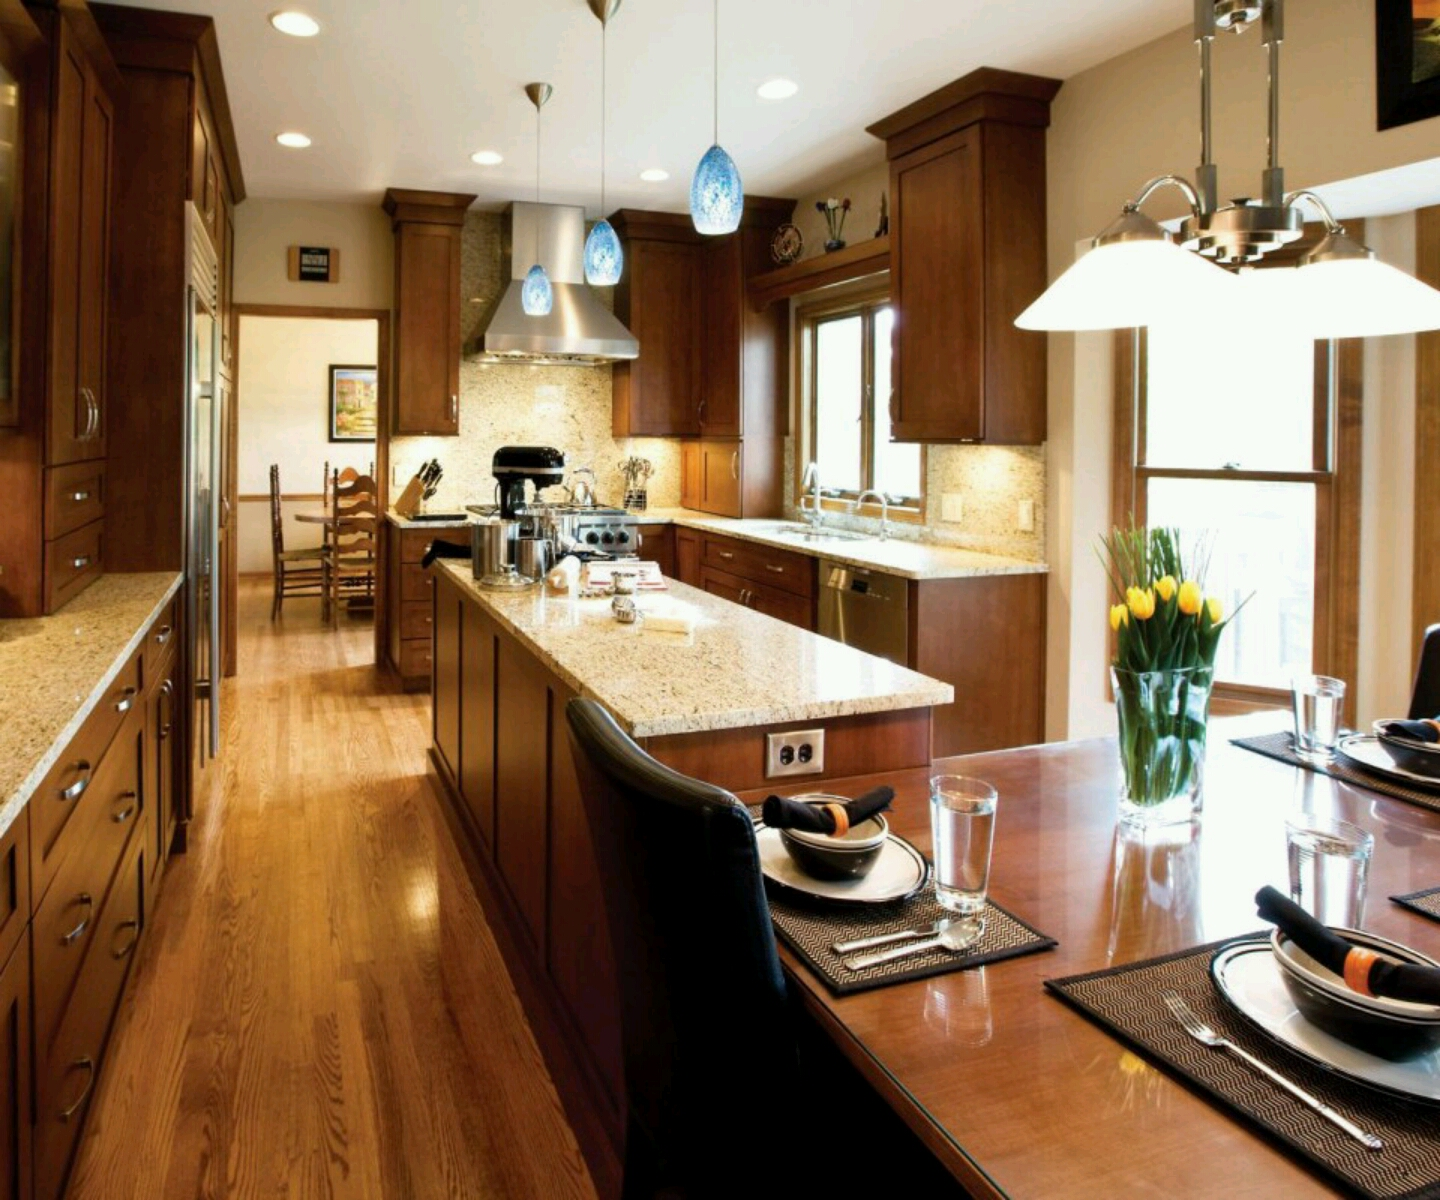 New Home Designs Latest Modern Kitchen Designs Ideas: New Home Designs Latest.: Kitchen Cabinets Designs Modern